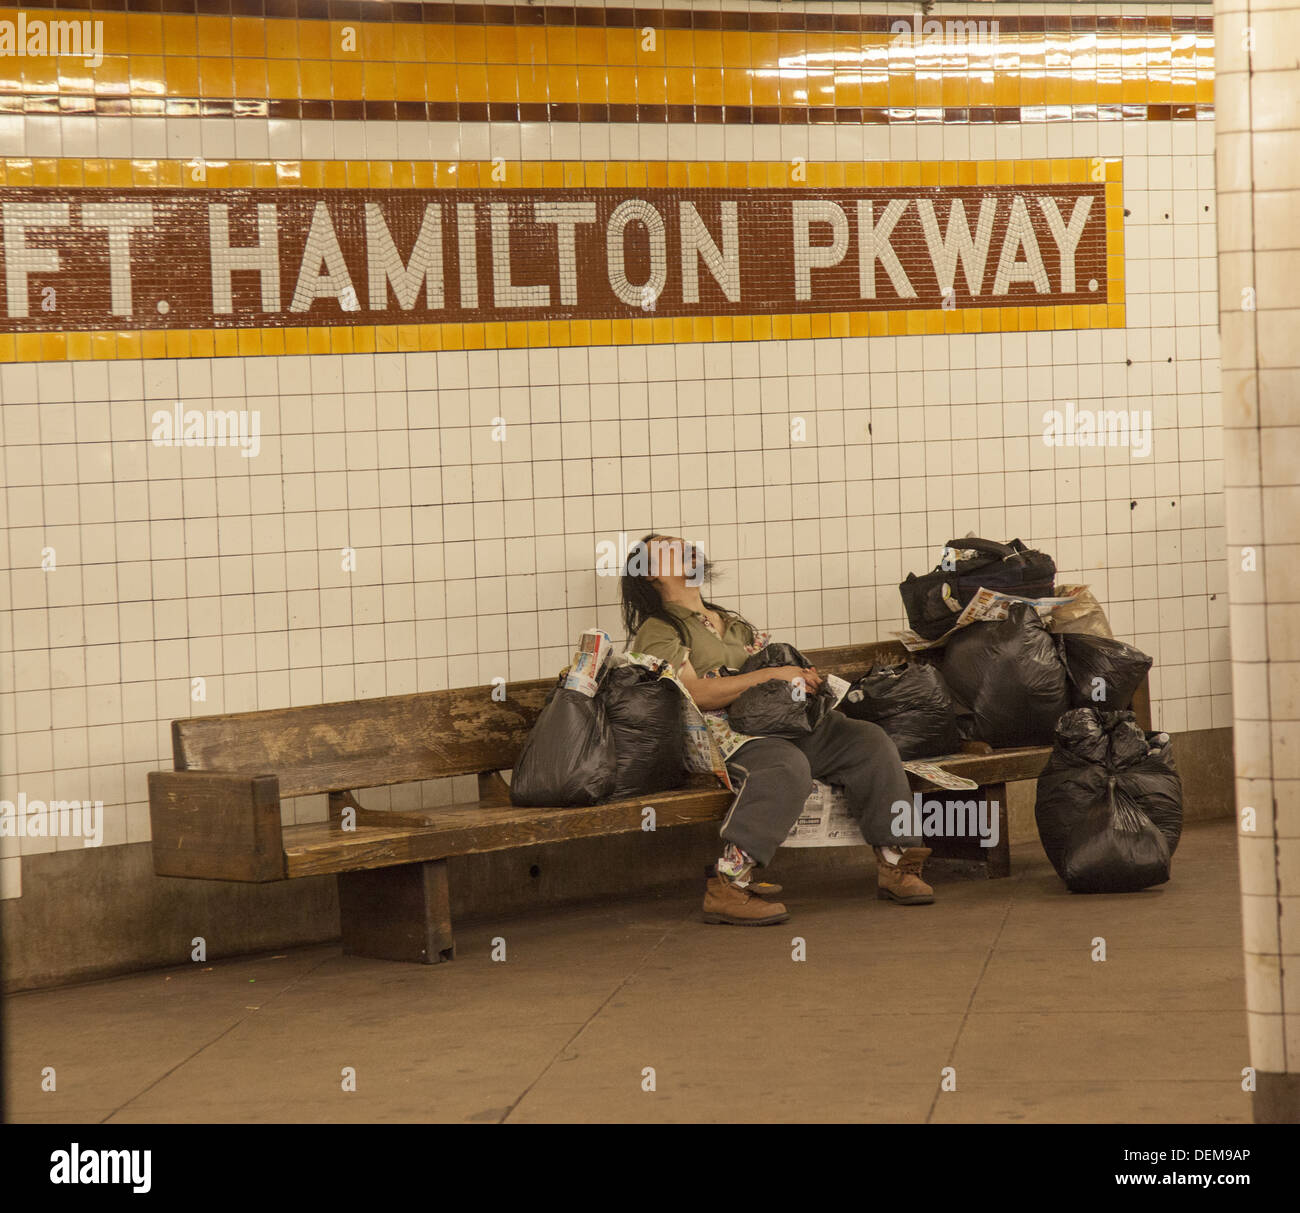 Homeless man with his possessions on the platform at a subway station in Brooklyn, NY. - Stock Image